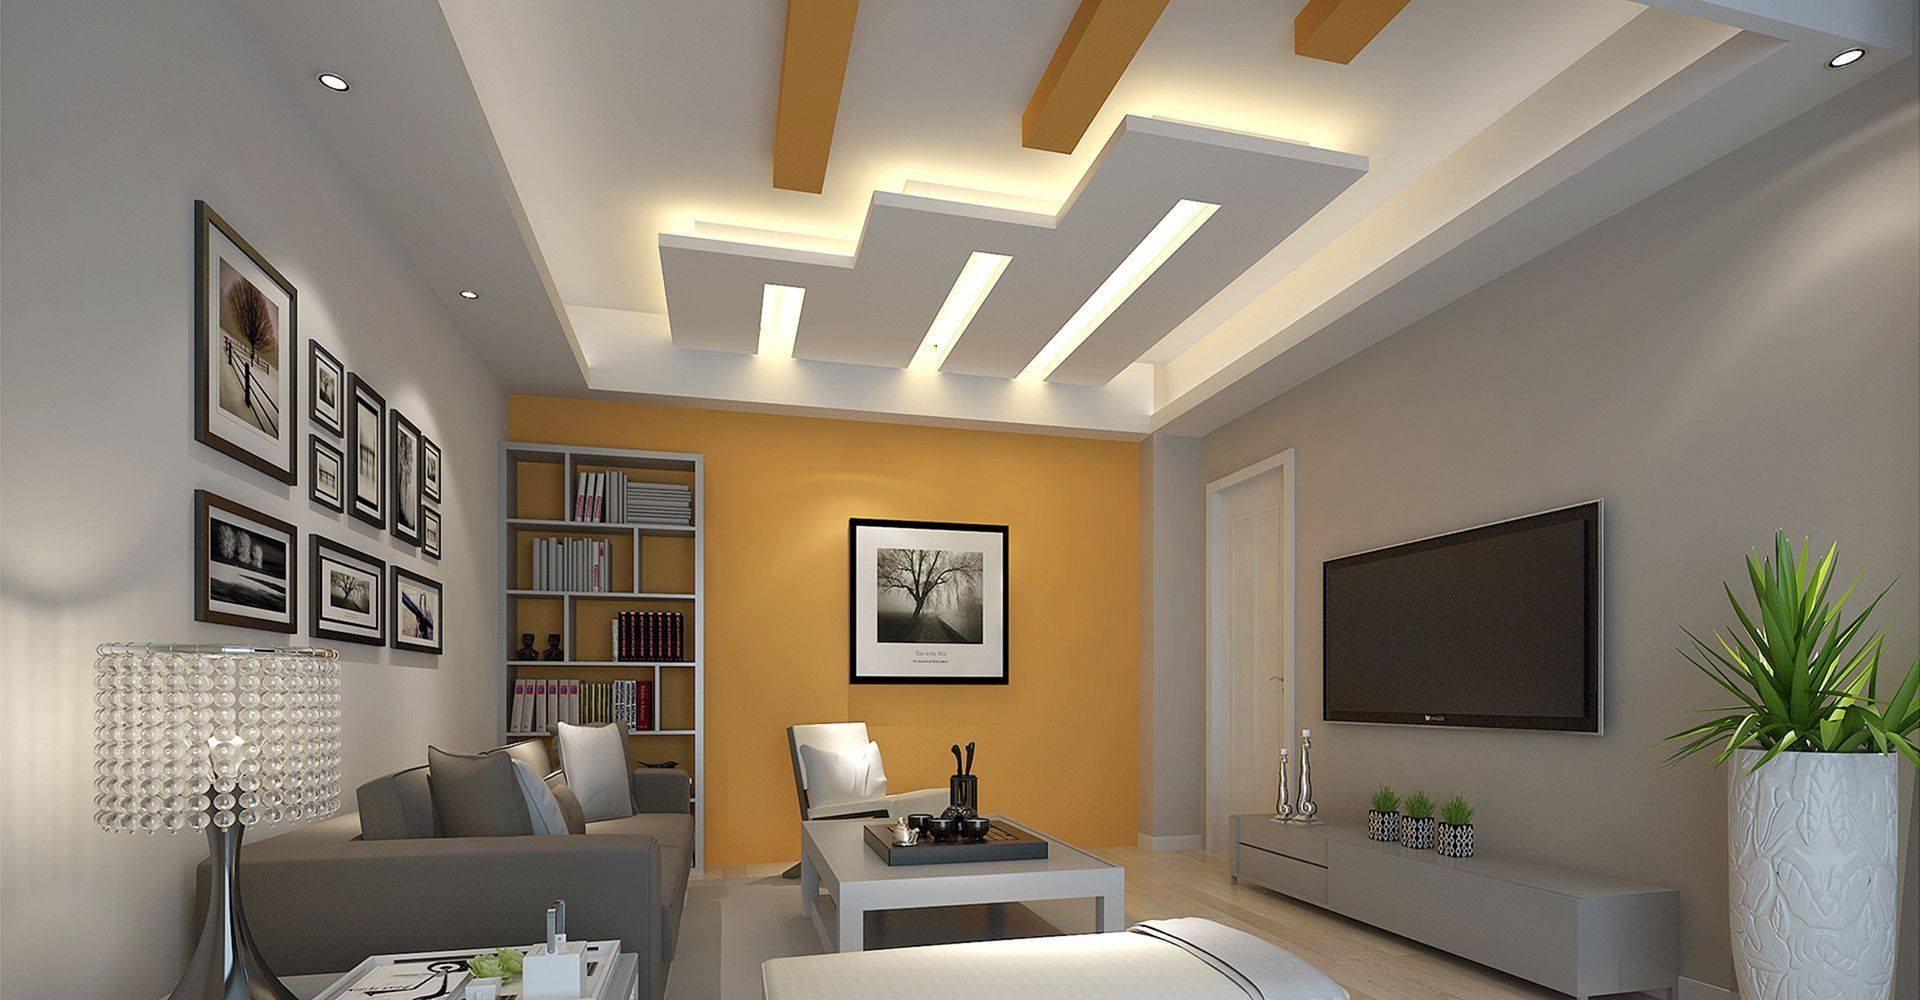 Incredible Fall Ceiling Designs for Living Room | Home Design